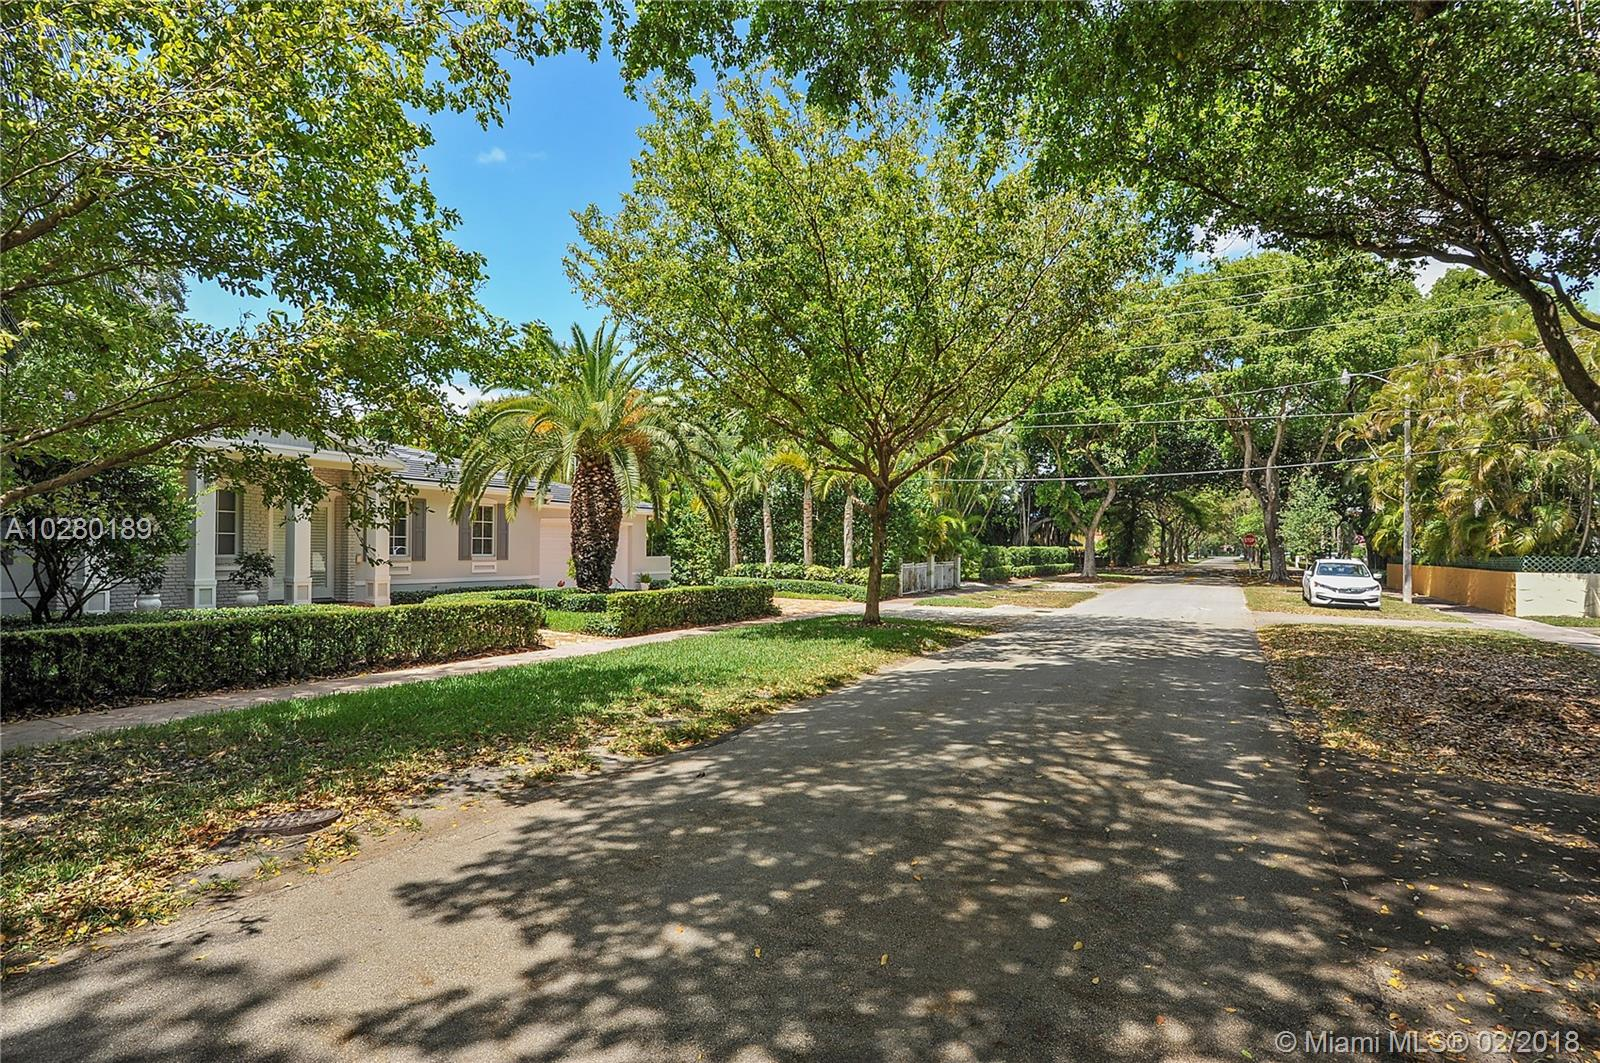 1124 Palermo Ave, Coral Gables FL, 33134